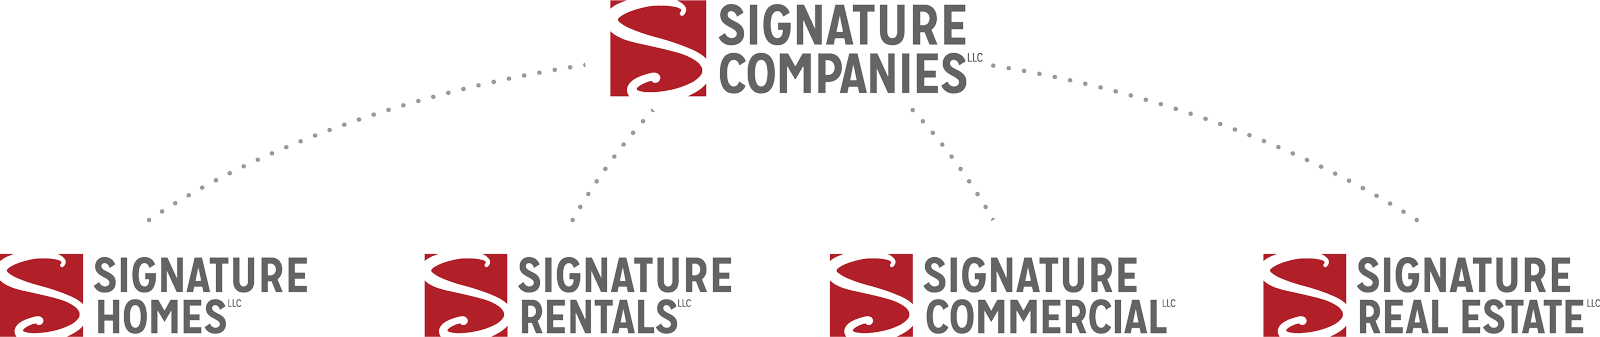 Signature Companies in Sioux Falls, SD